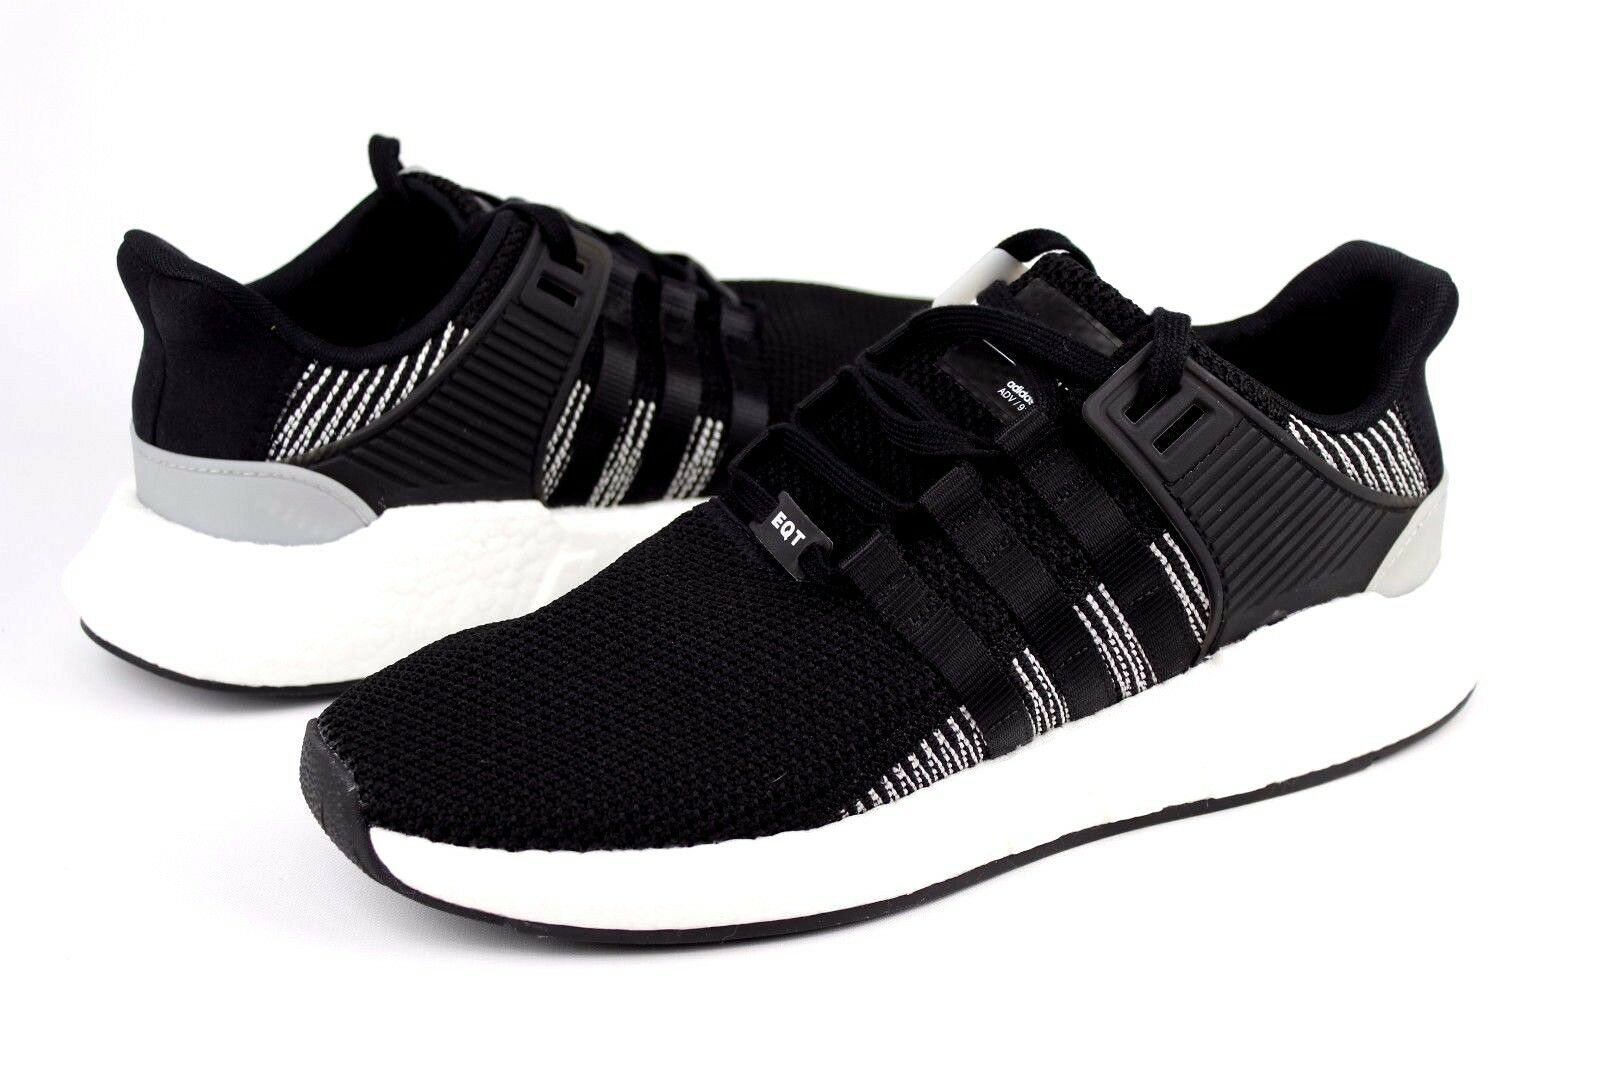 Adidas Size EQT Boost Support 93/17 BY9509 Black Black White Size Adidas 11.5 NIB 5381f2